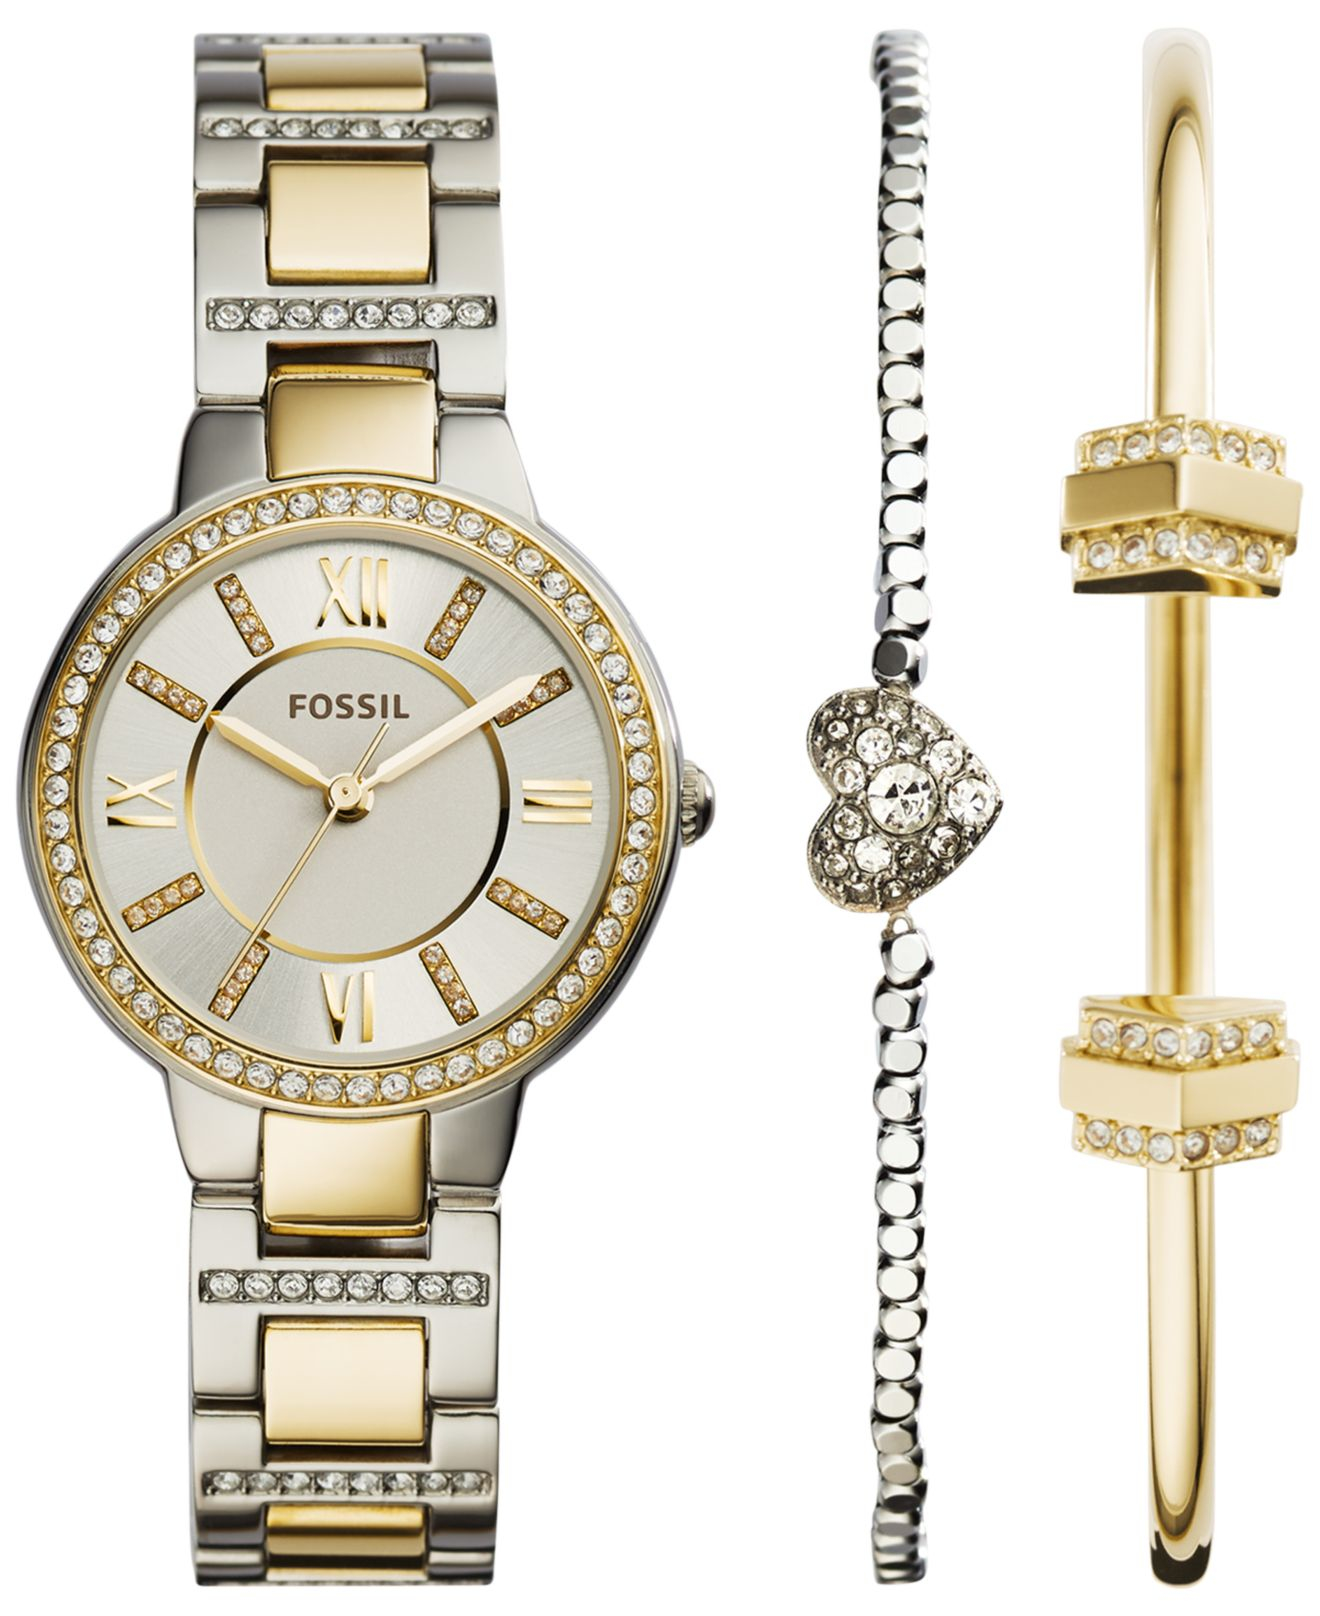 online armani watches watch crystal buyarmani s bracelet johnlewis at main women rsp strap pdp silver exchange